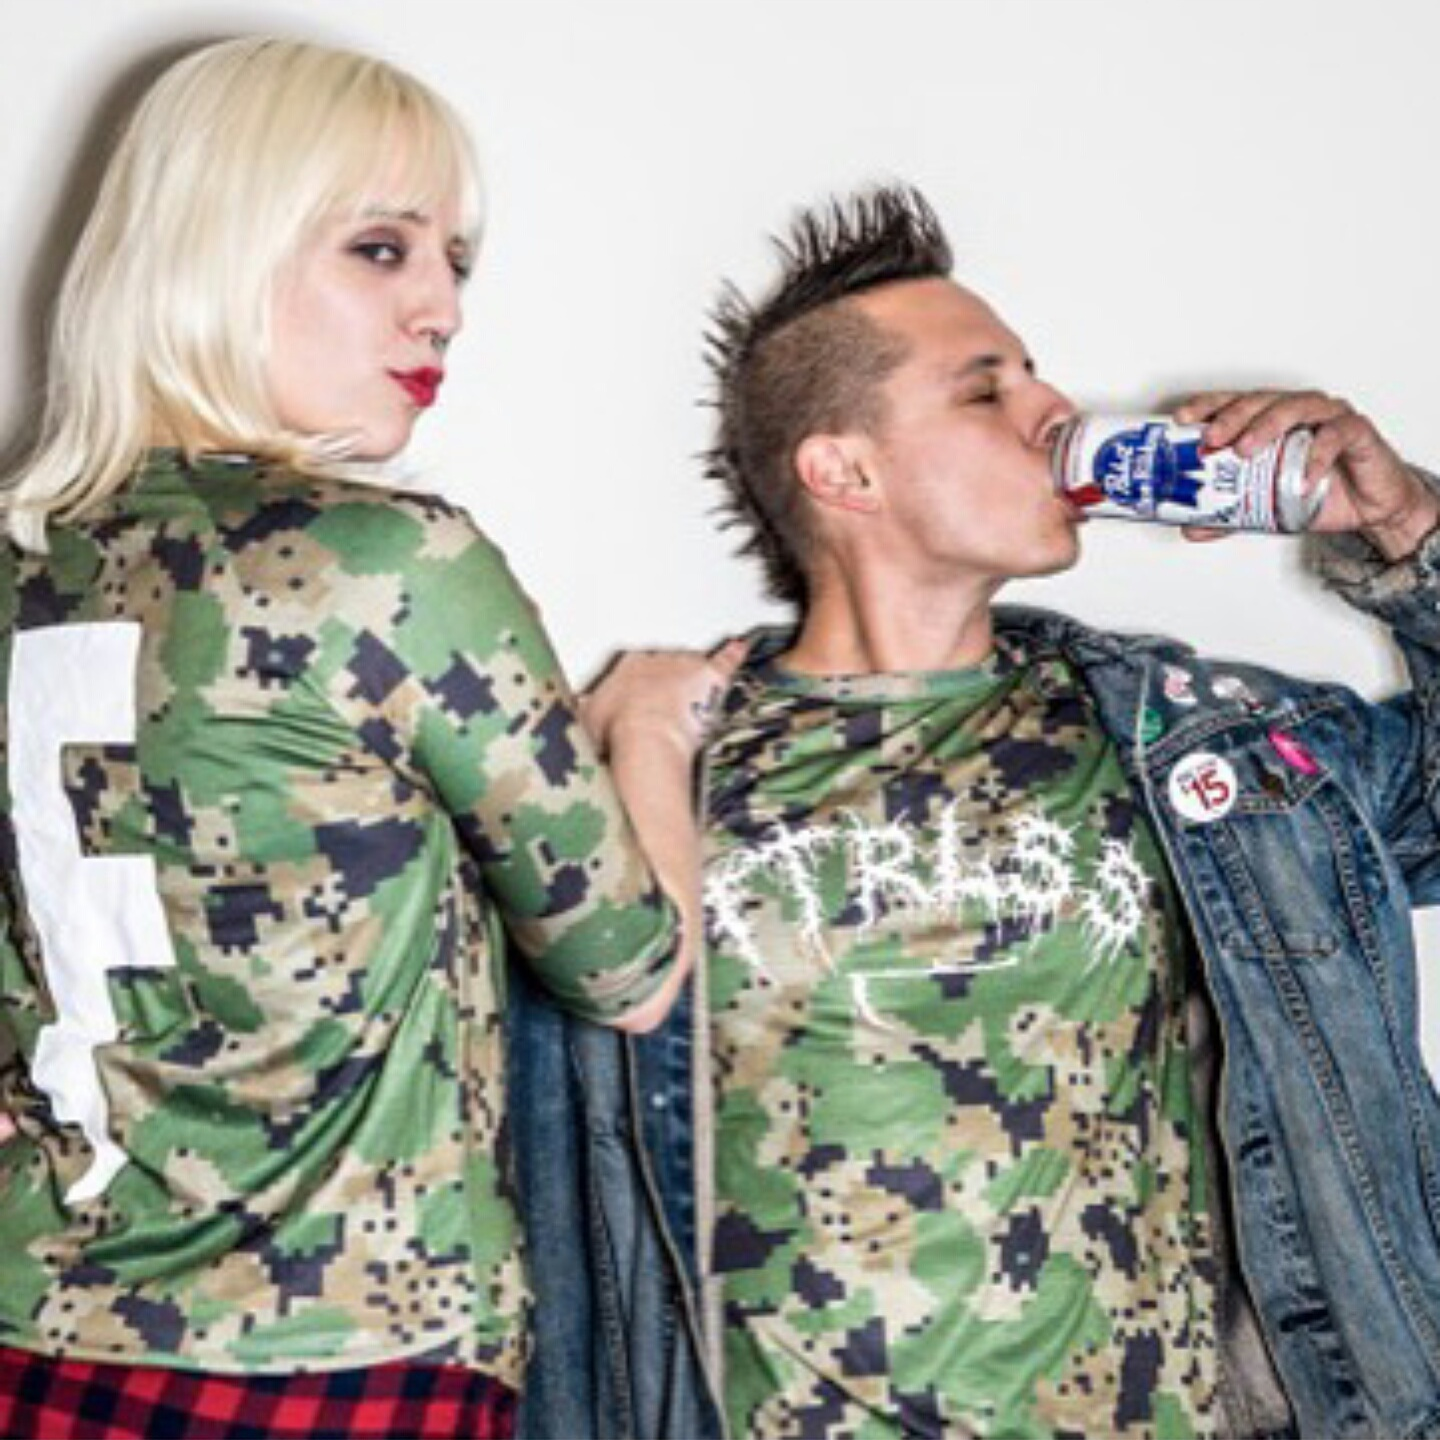 Dave and Shandi, representing Futureless Clothing with the kind of verve and lack of fucks that surely makes you want to buy it. I do. Support your small, insane labels.